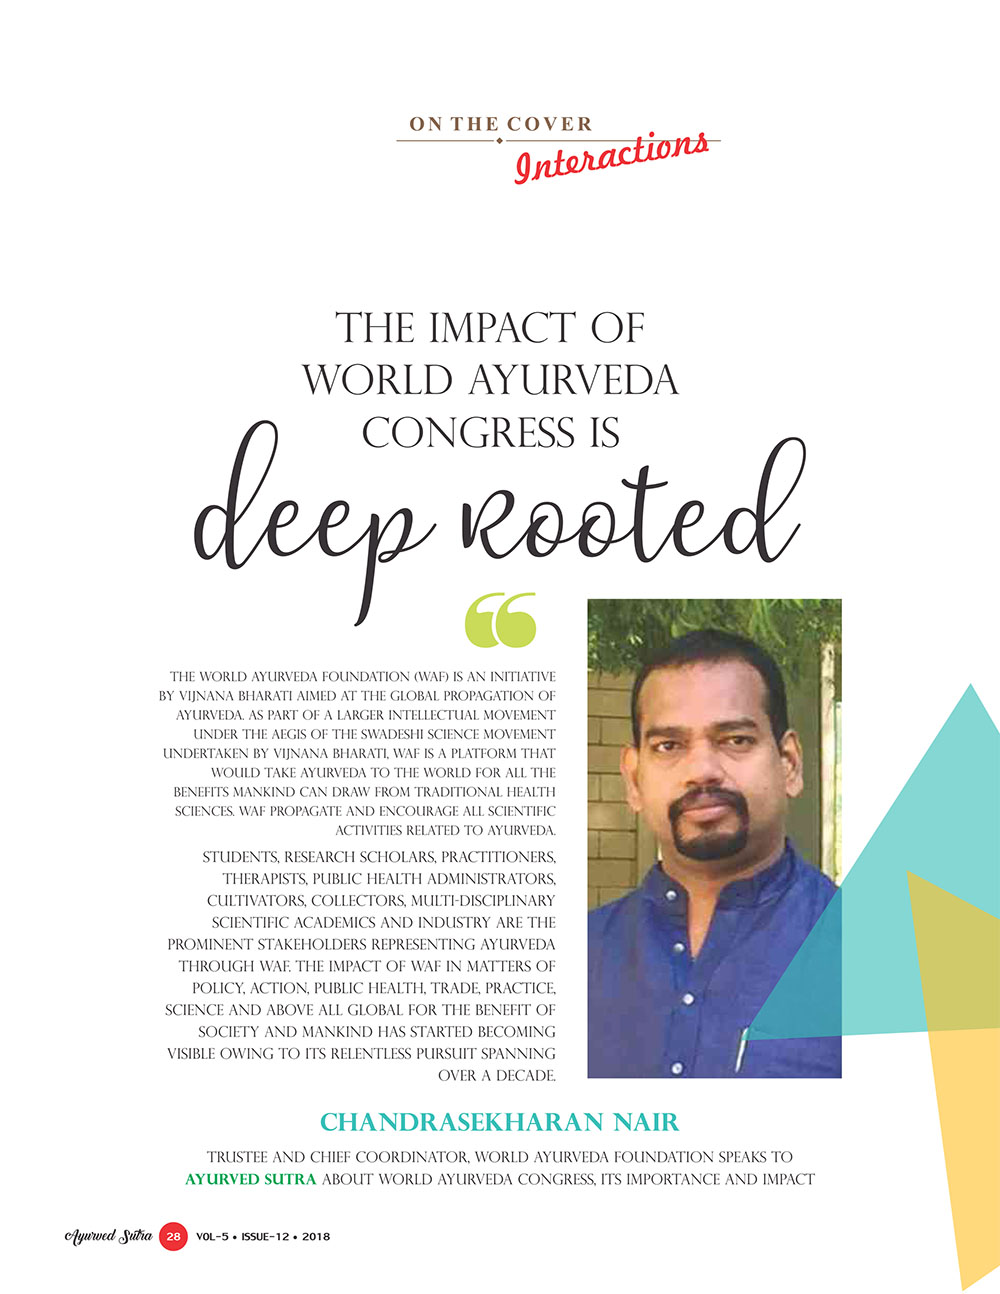 Ayurvedsutra Vol 05 issue 12 30 - The Impact of World Ayurveda Congress is deep rooted